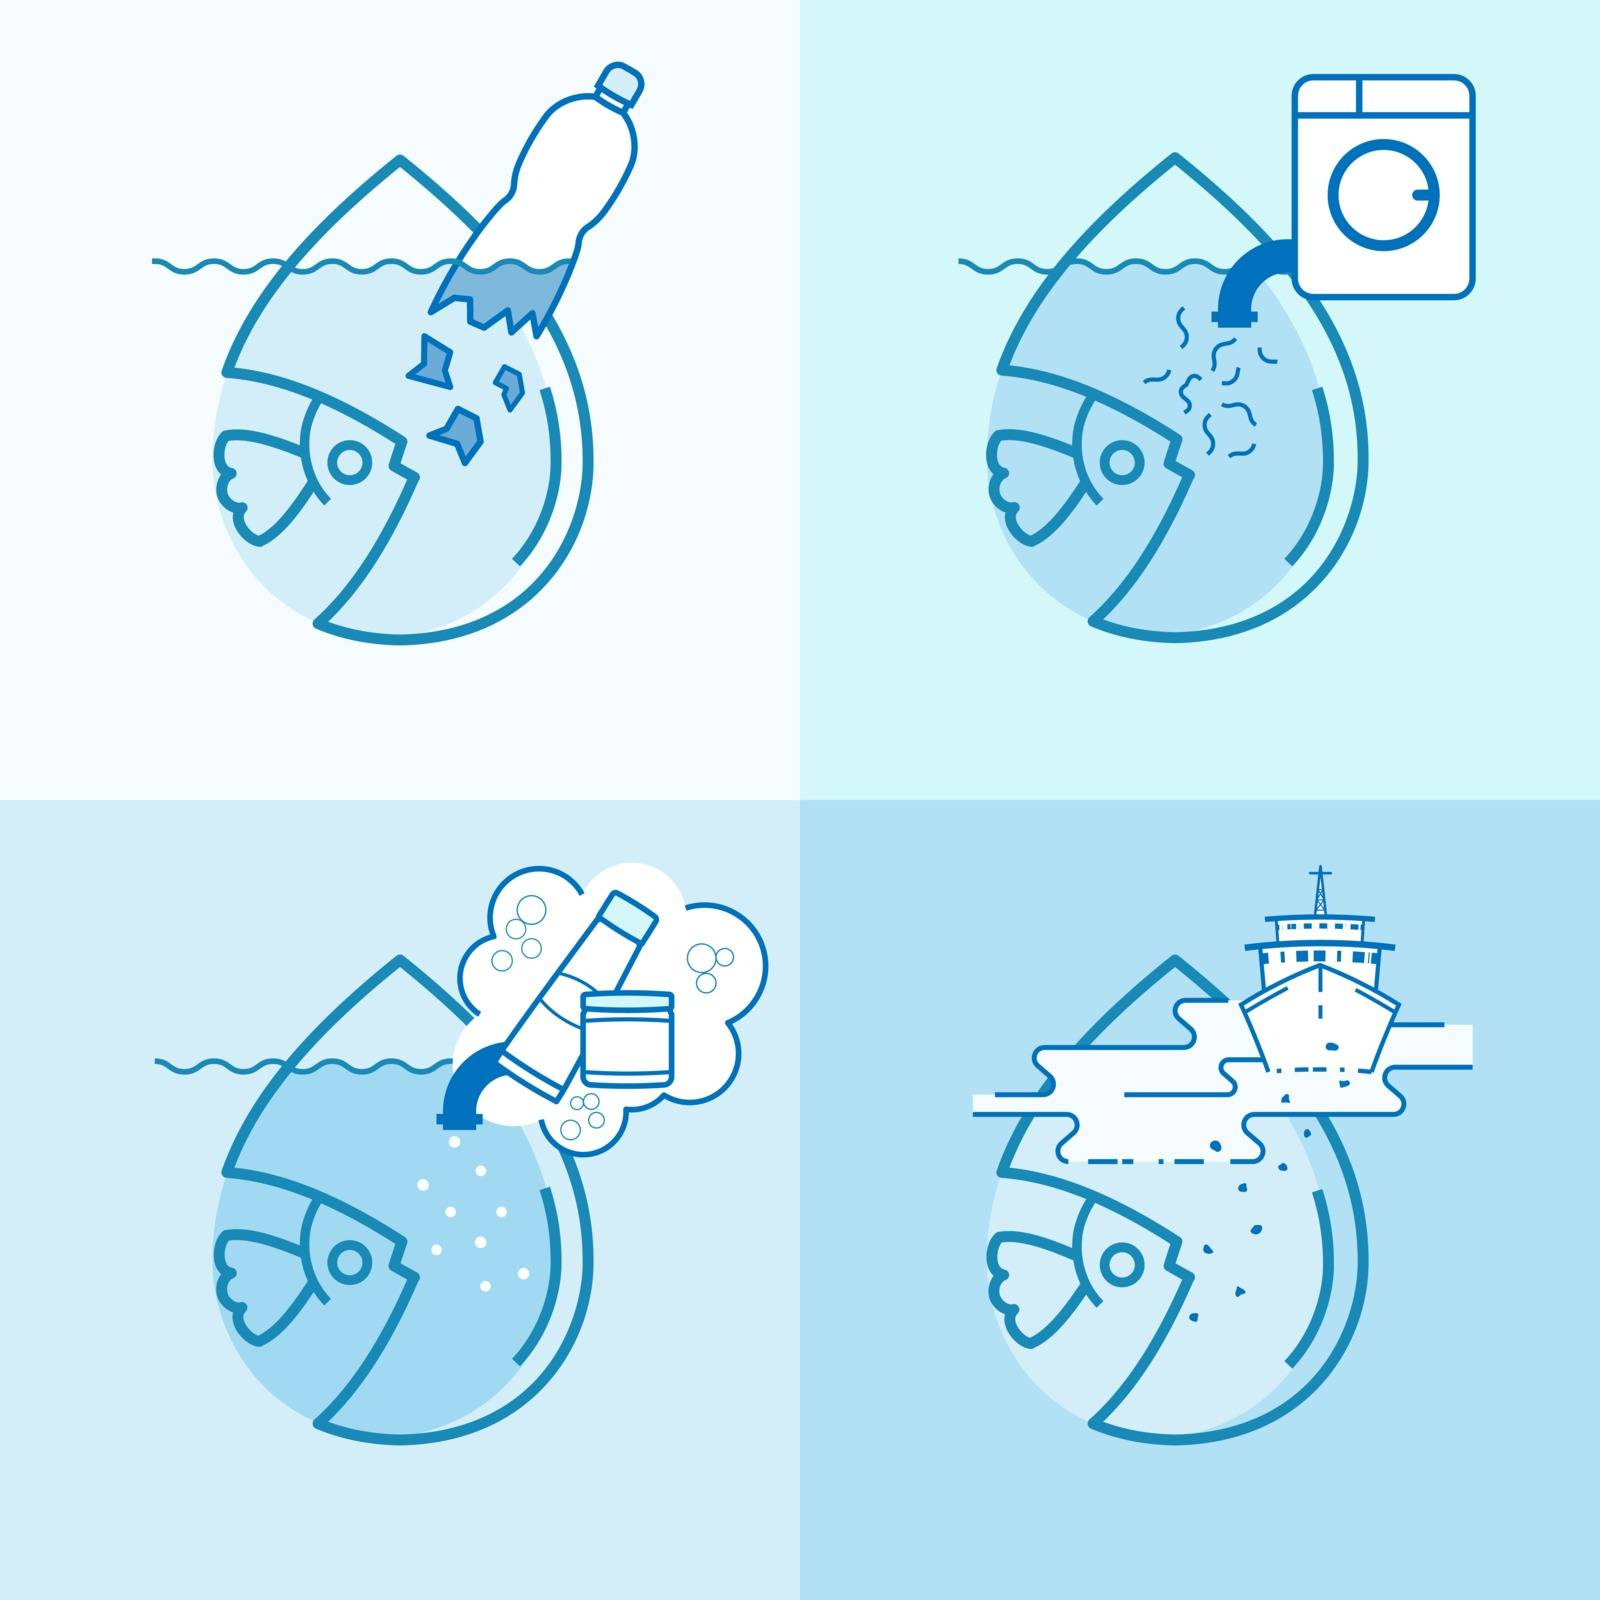 Microplastic pollution symbol set. Causes of contamination of water. Effect of toxic waste on marine animal. Vector illustration outline flat design style.